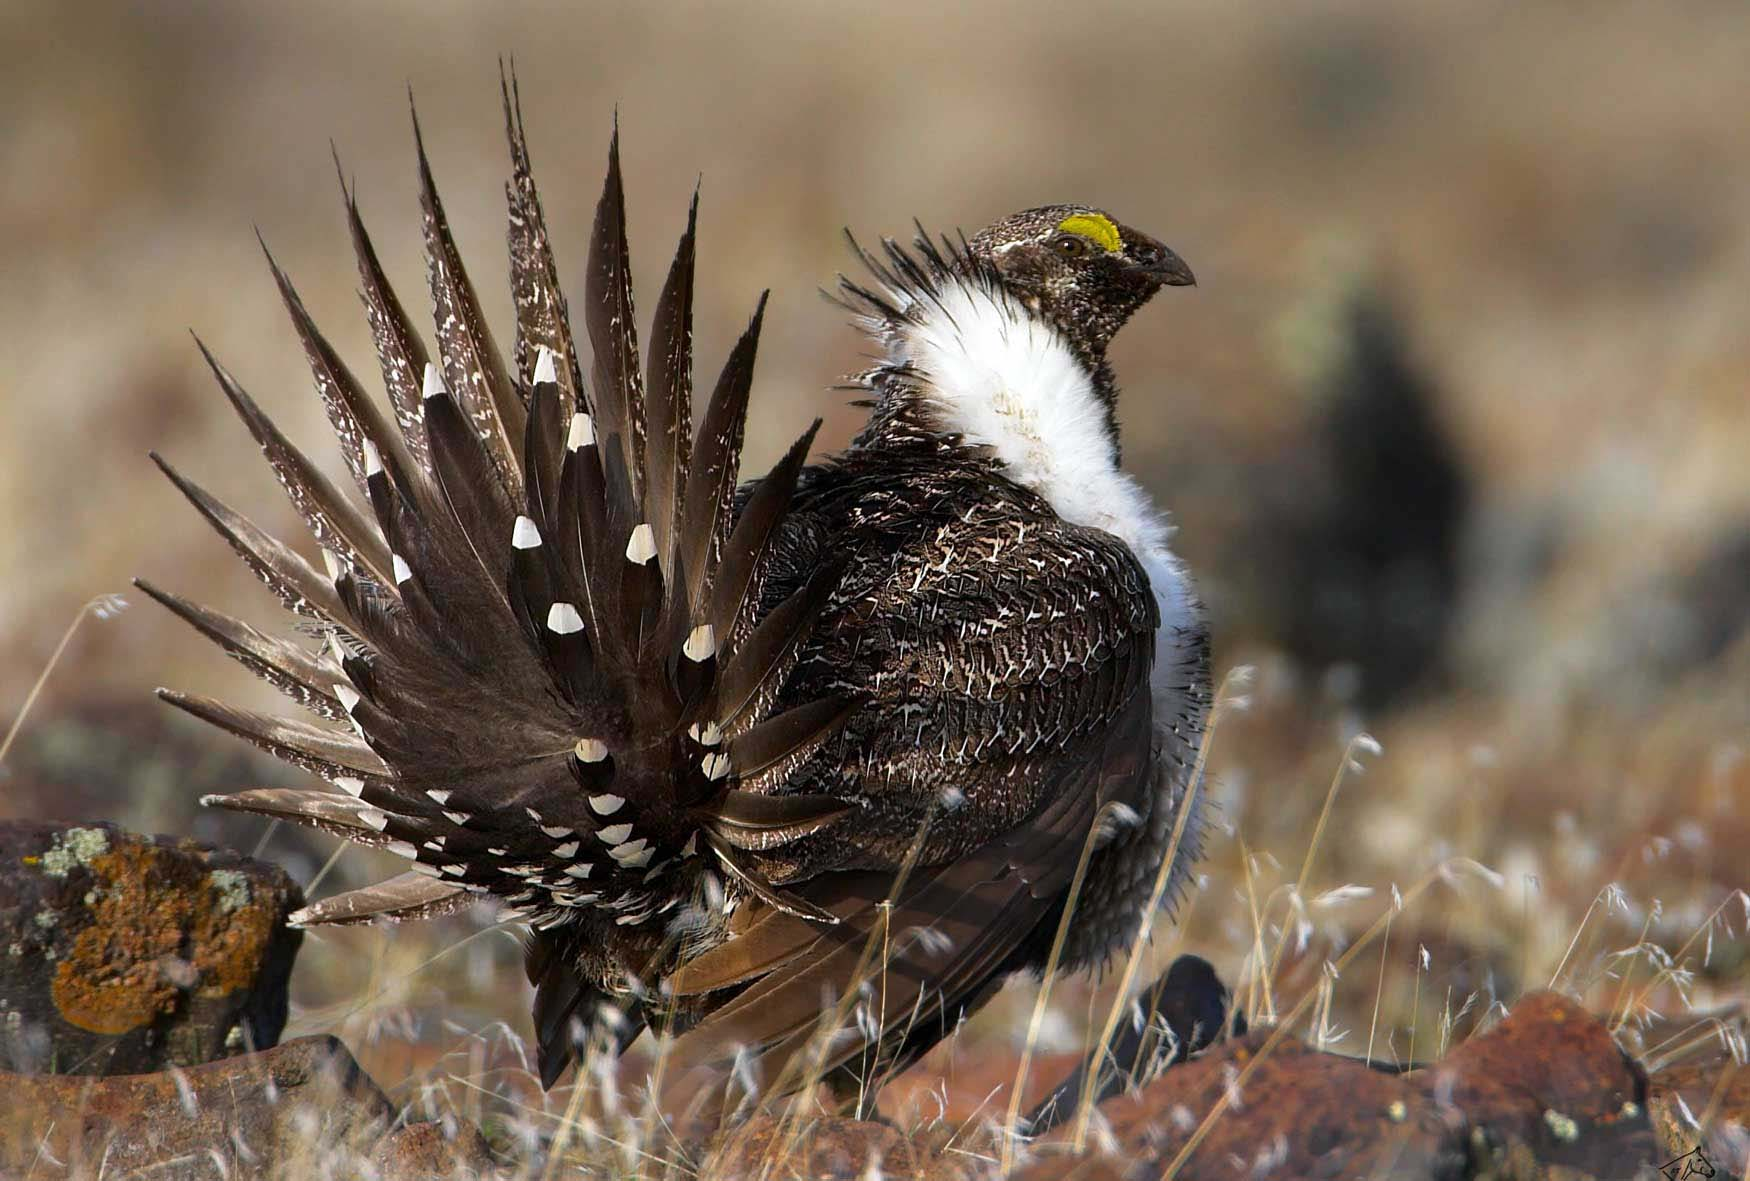 The greater sage grouse faces pressure from fragmented habitat resulting from development across the West. (Stephen Ting photo - click to enlarge)